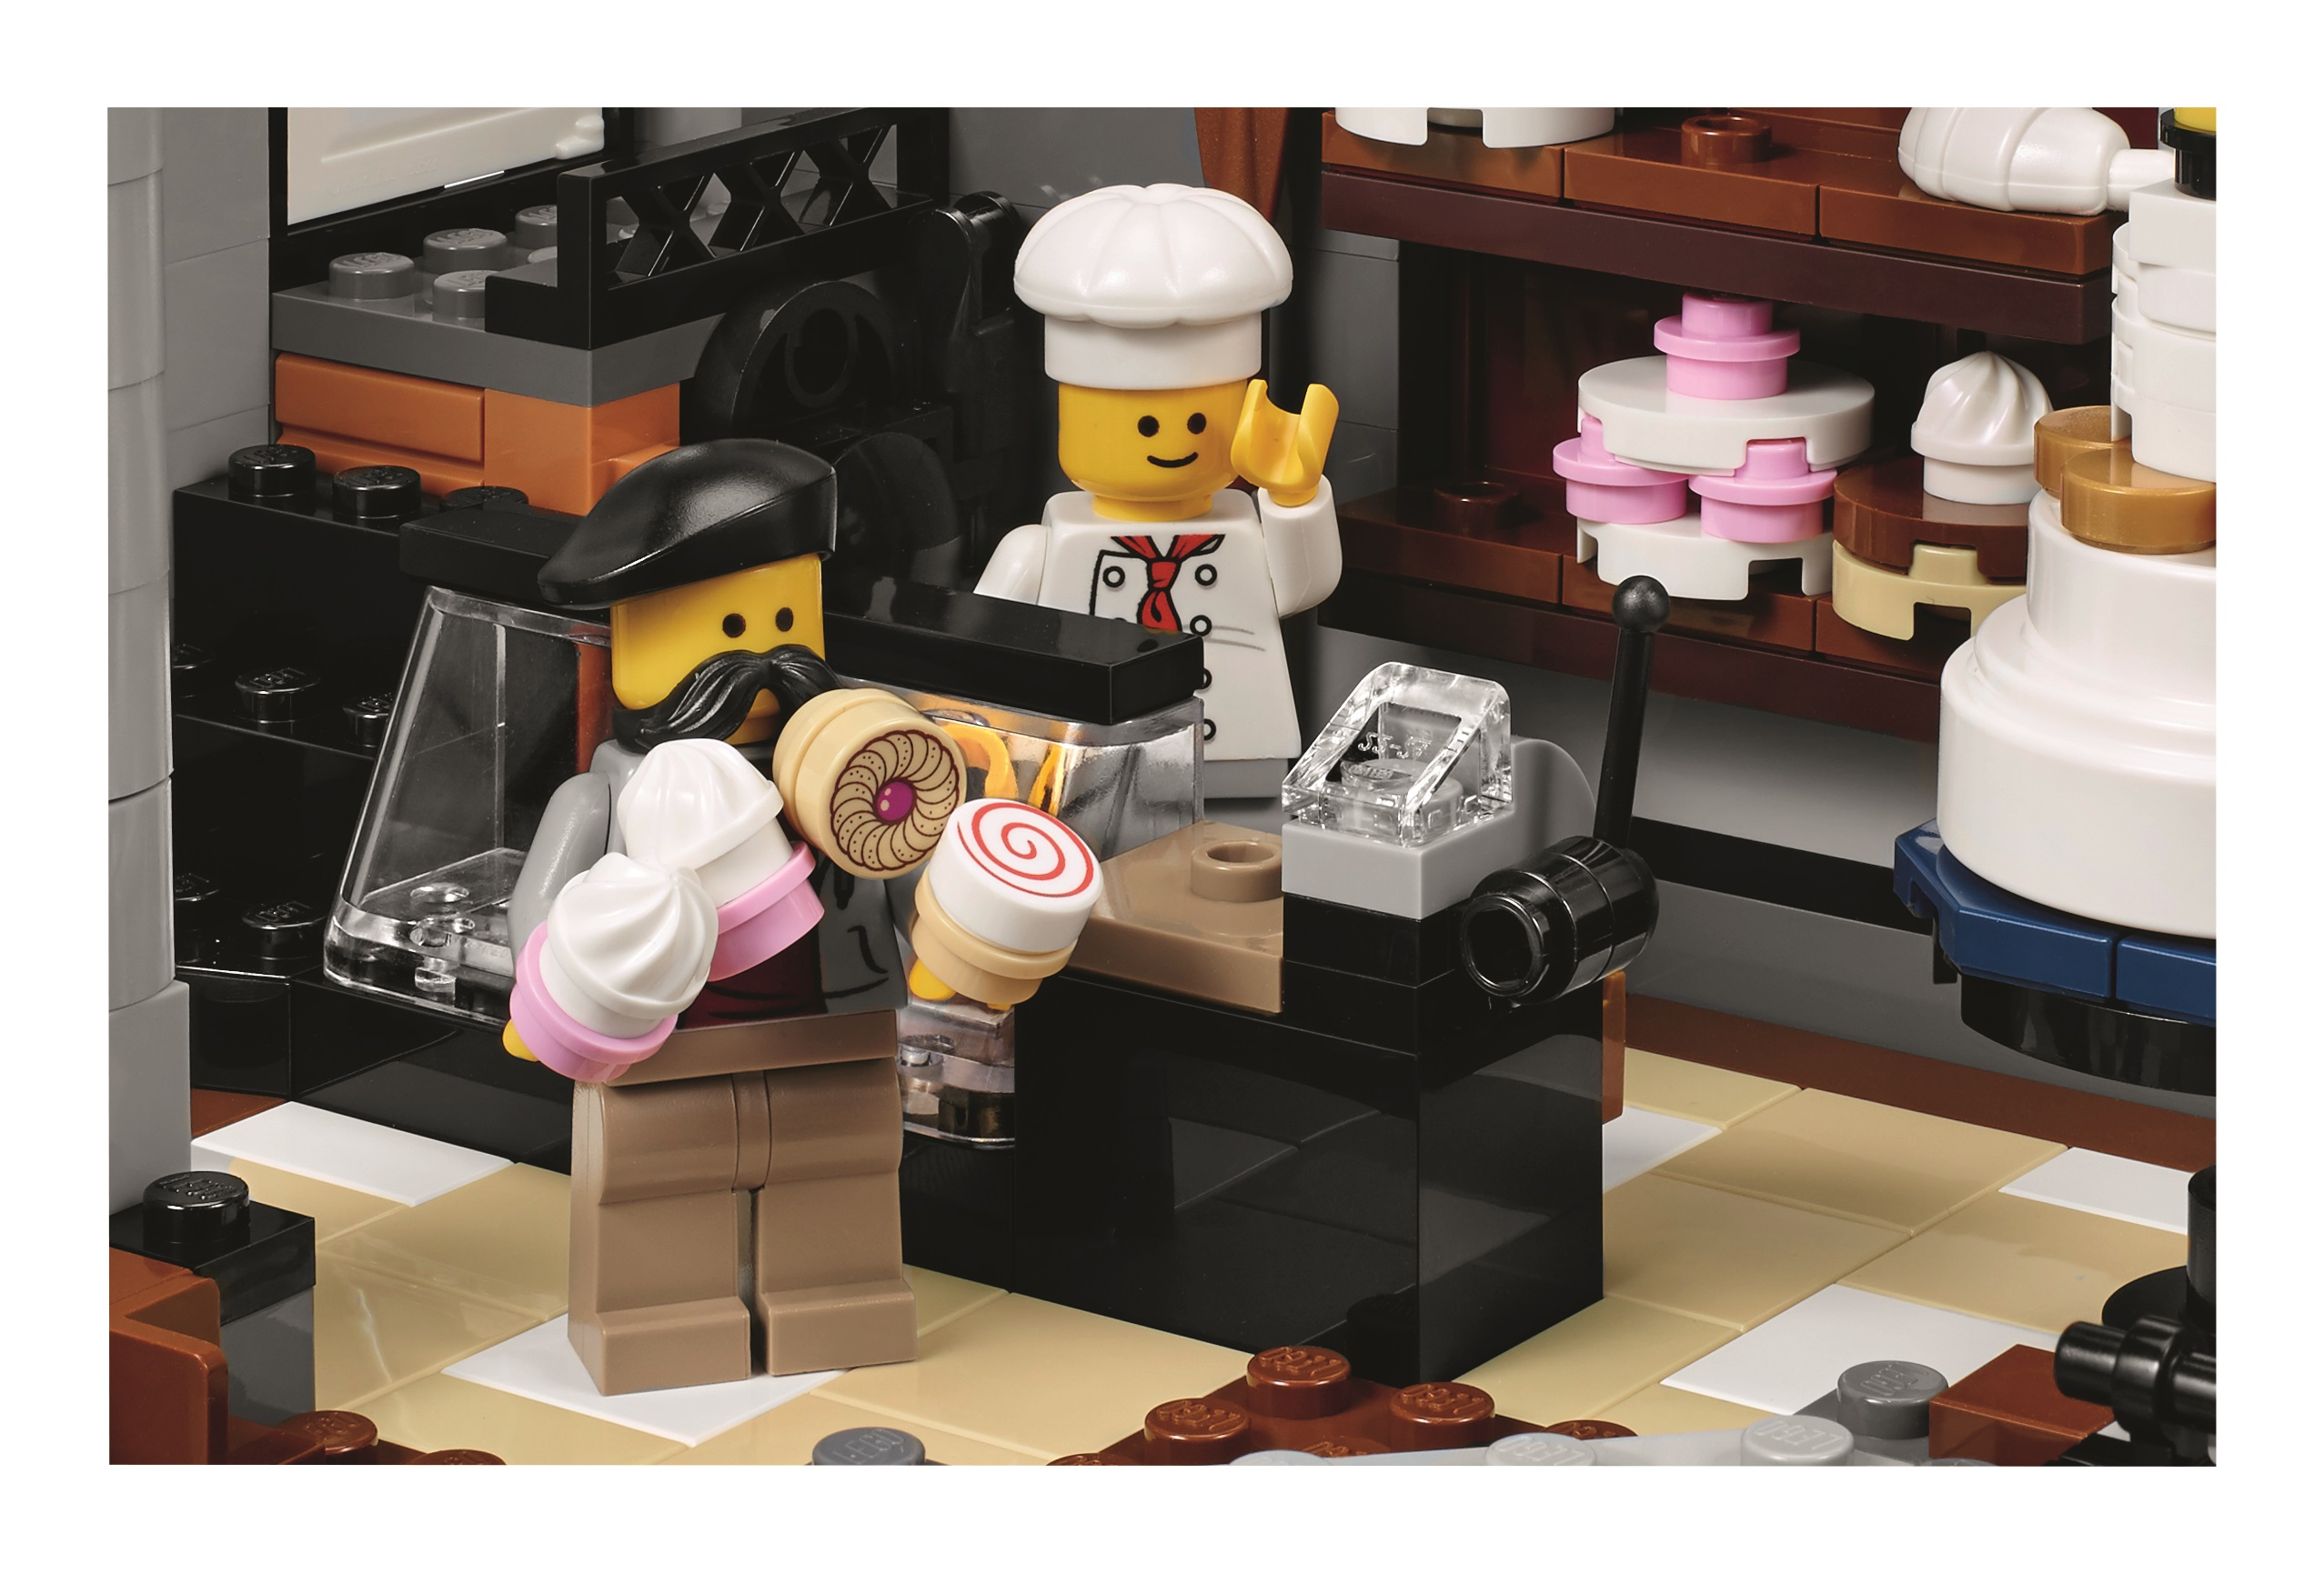 The 4 002 Piece Lego 10255 Assembly Square Is A 10 Year